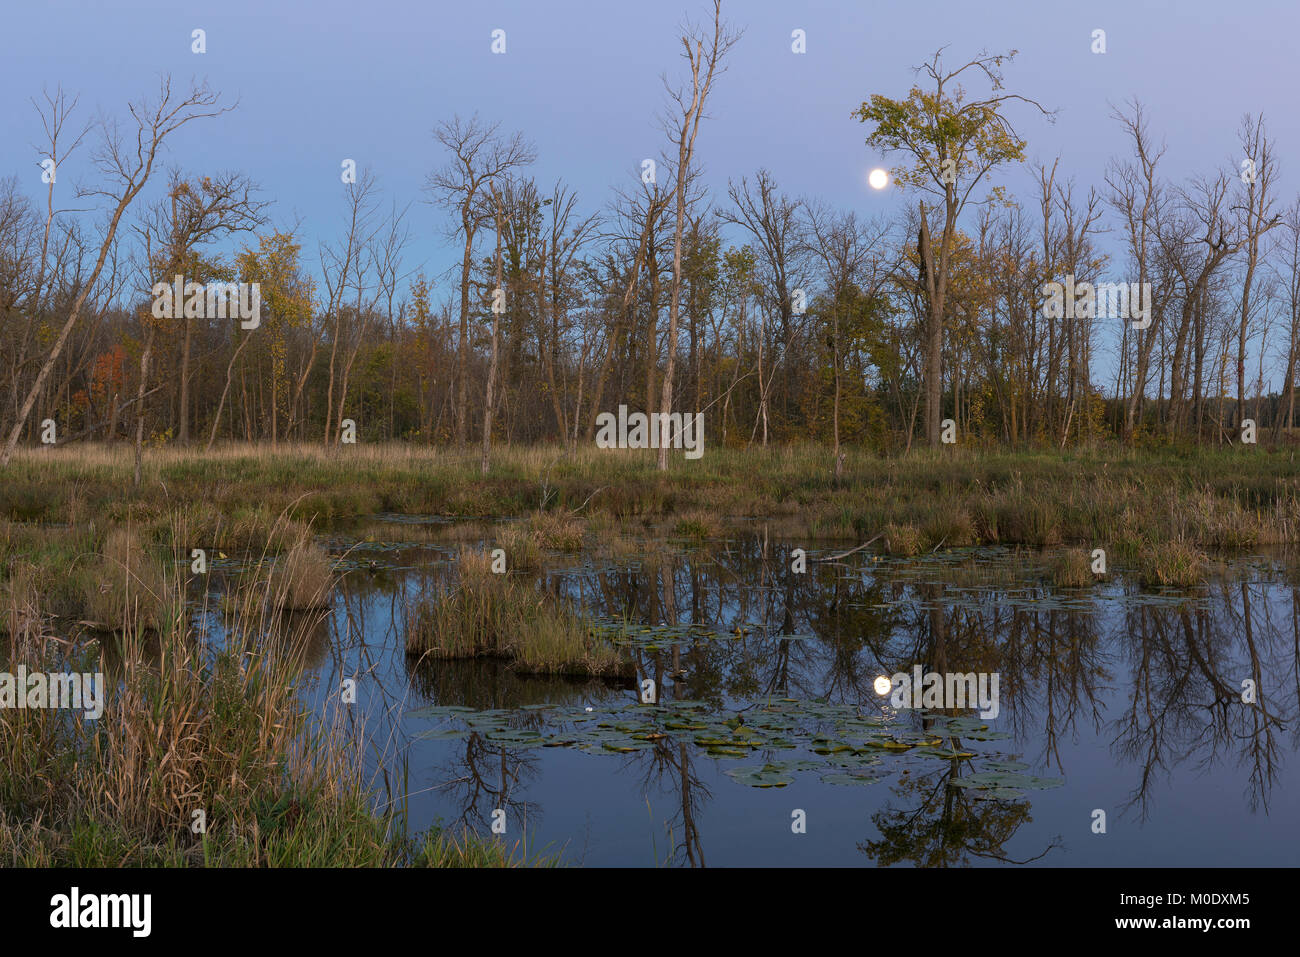 Full Moon, wetland. Tamarac NWR near Detroit Lakes, MN, USA, early Ocotober, by Dominique Braud/Dembinsky Photo - Stock Image